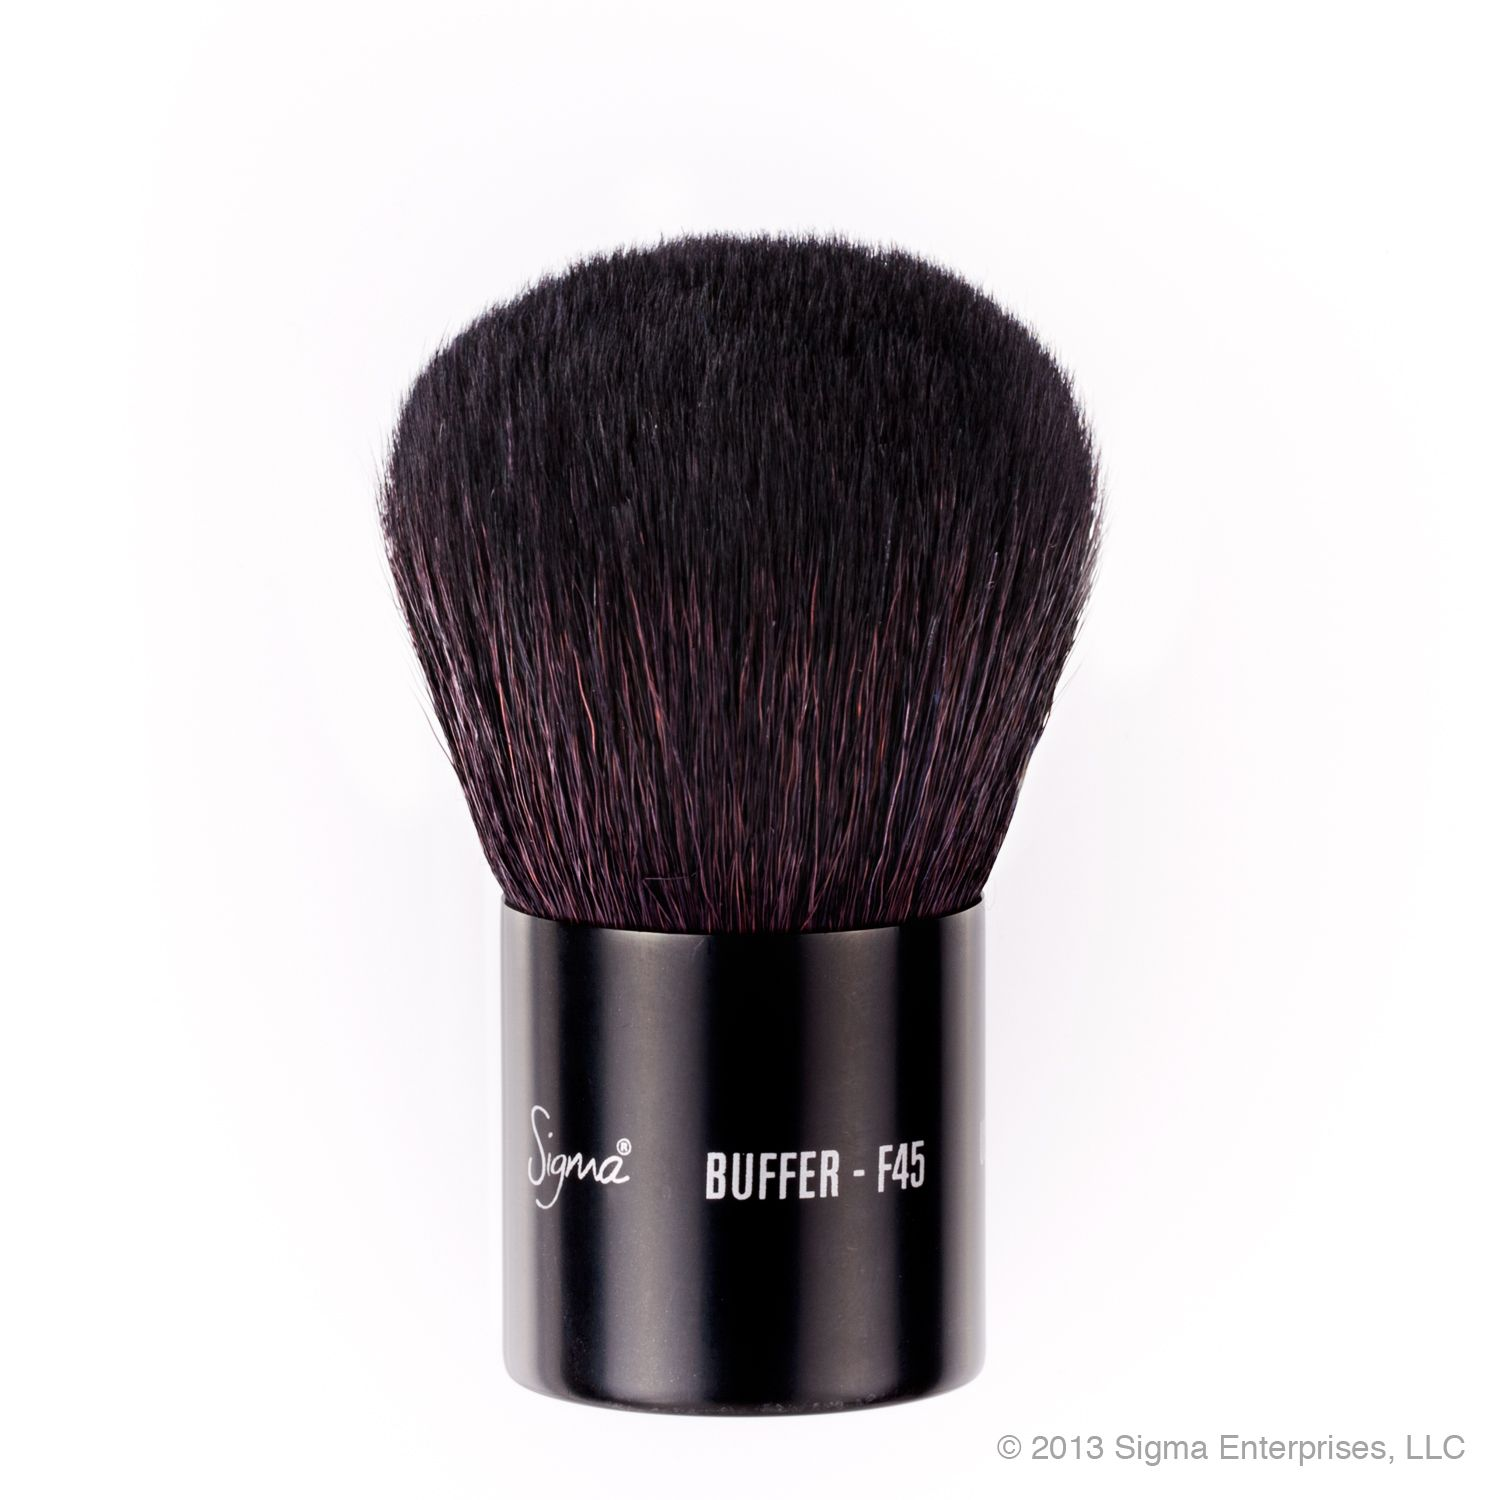 Buff mineral powder products onto the skin with a circular motion for the best effect.